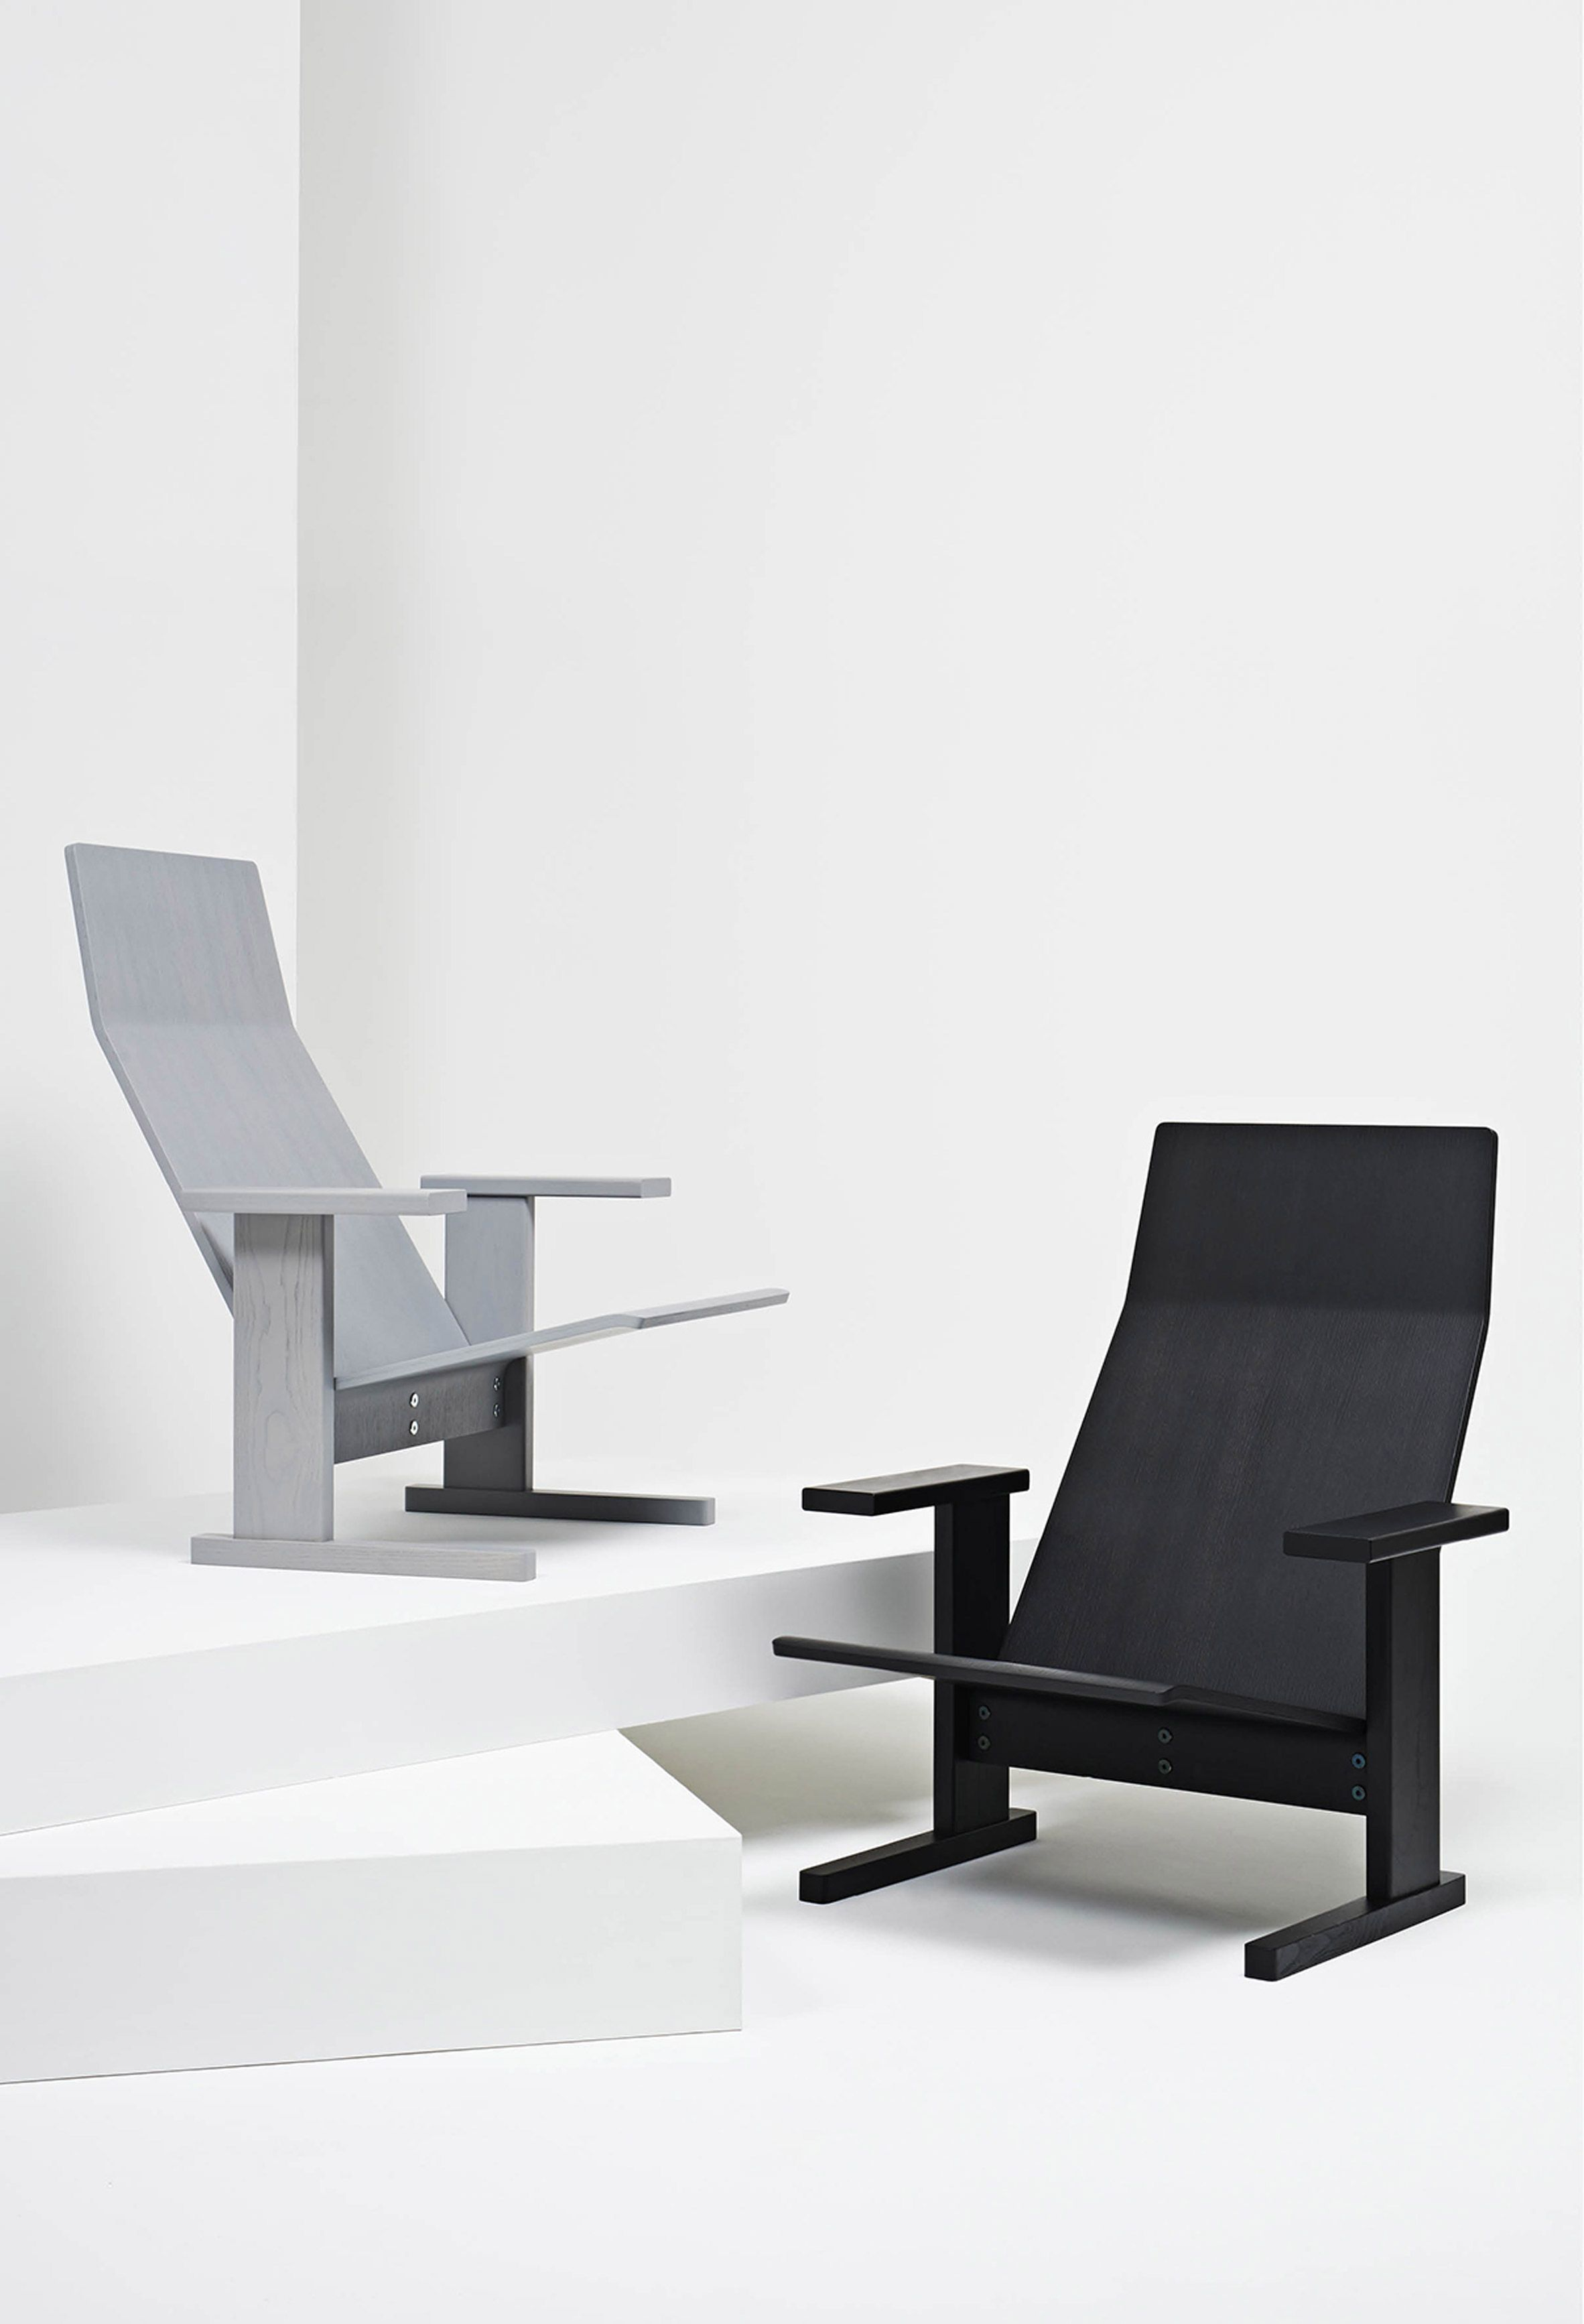 Quindici Seat By Bouroullec Brothers For Mattiazzi Furniture Outdoor Furniture Design Furniture Design